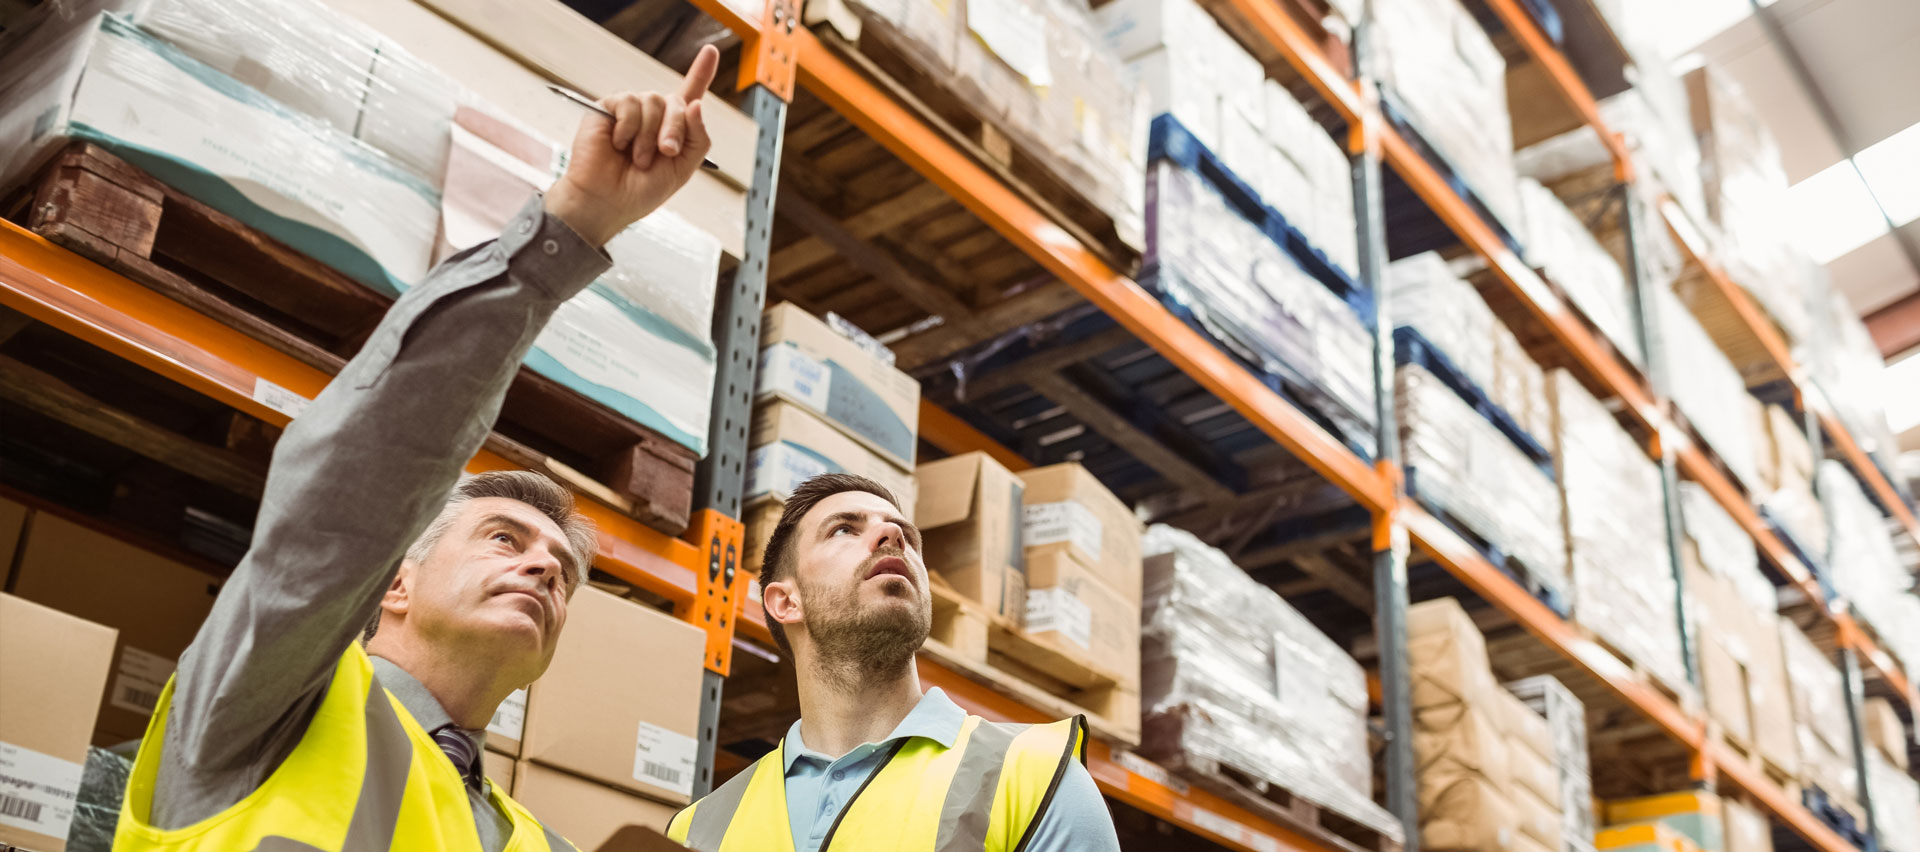 How Small Businesses Can Benefit from Warehousing and Distribution Services